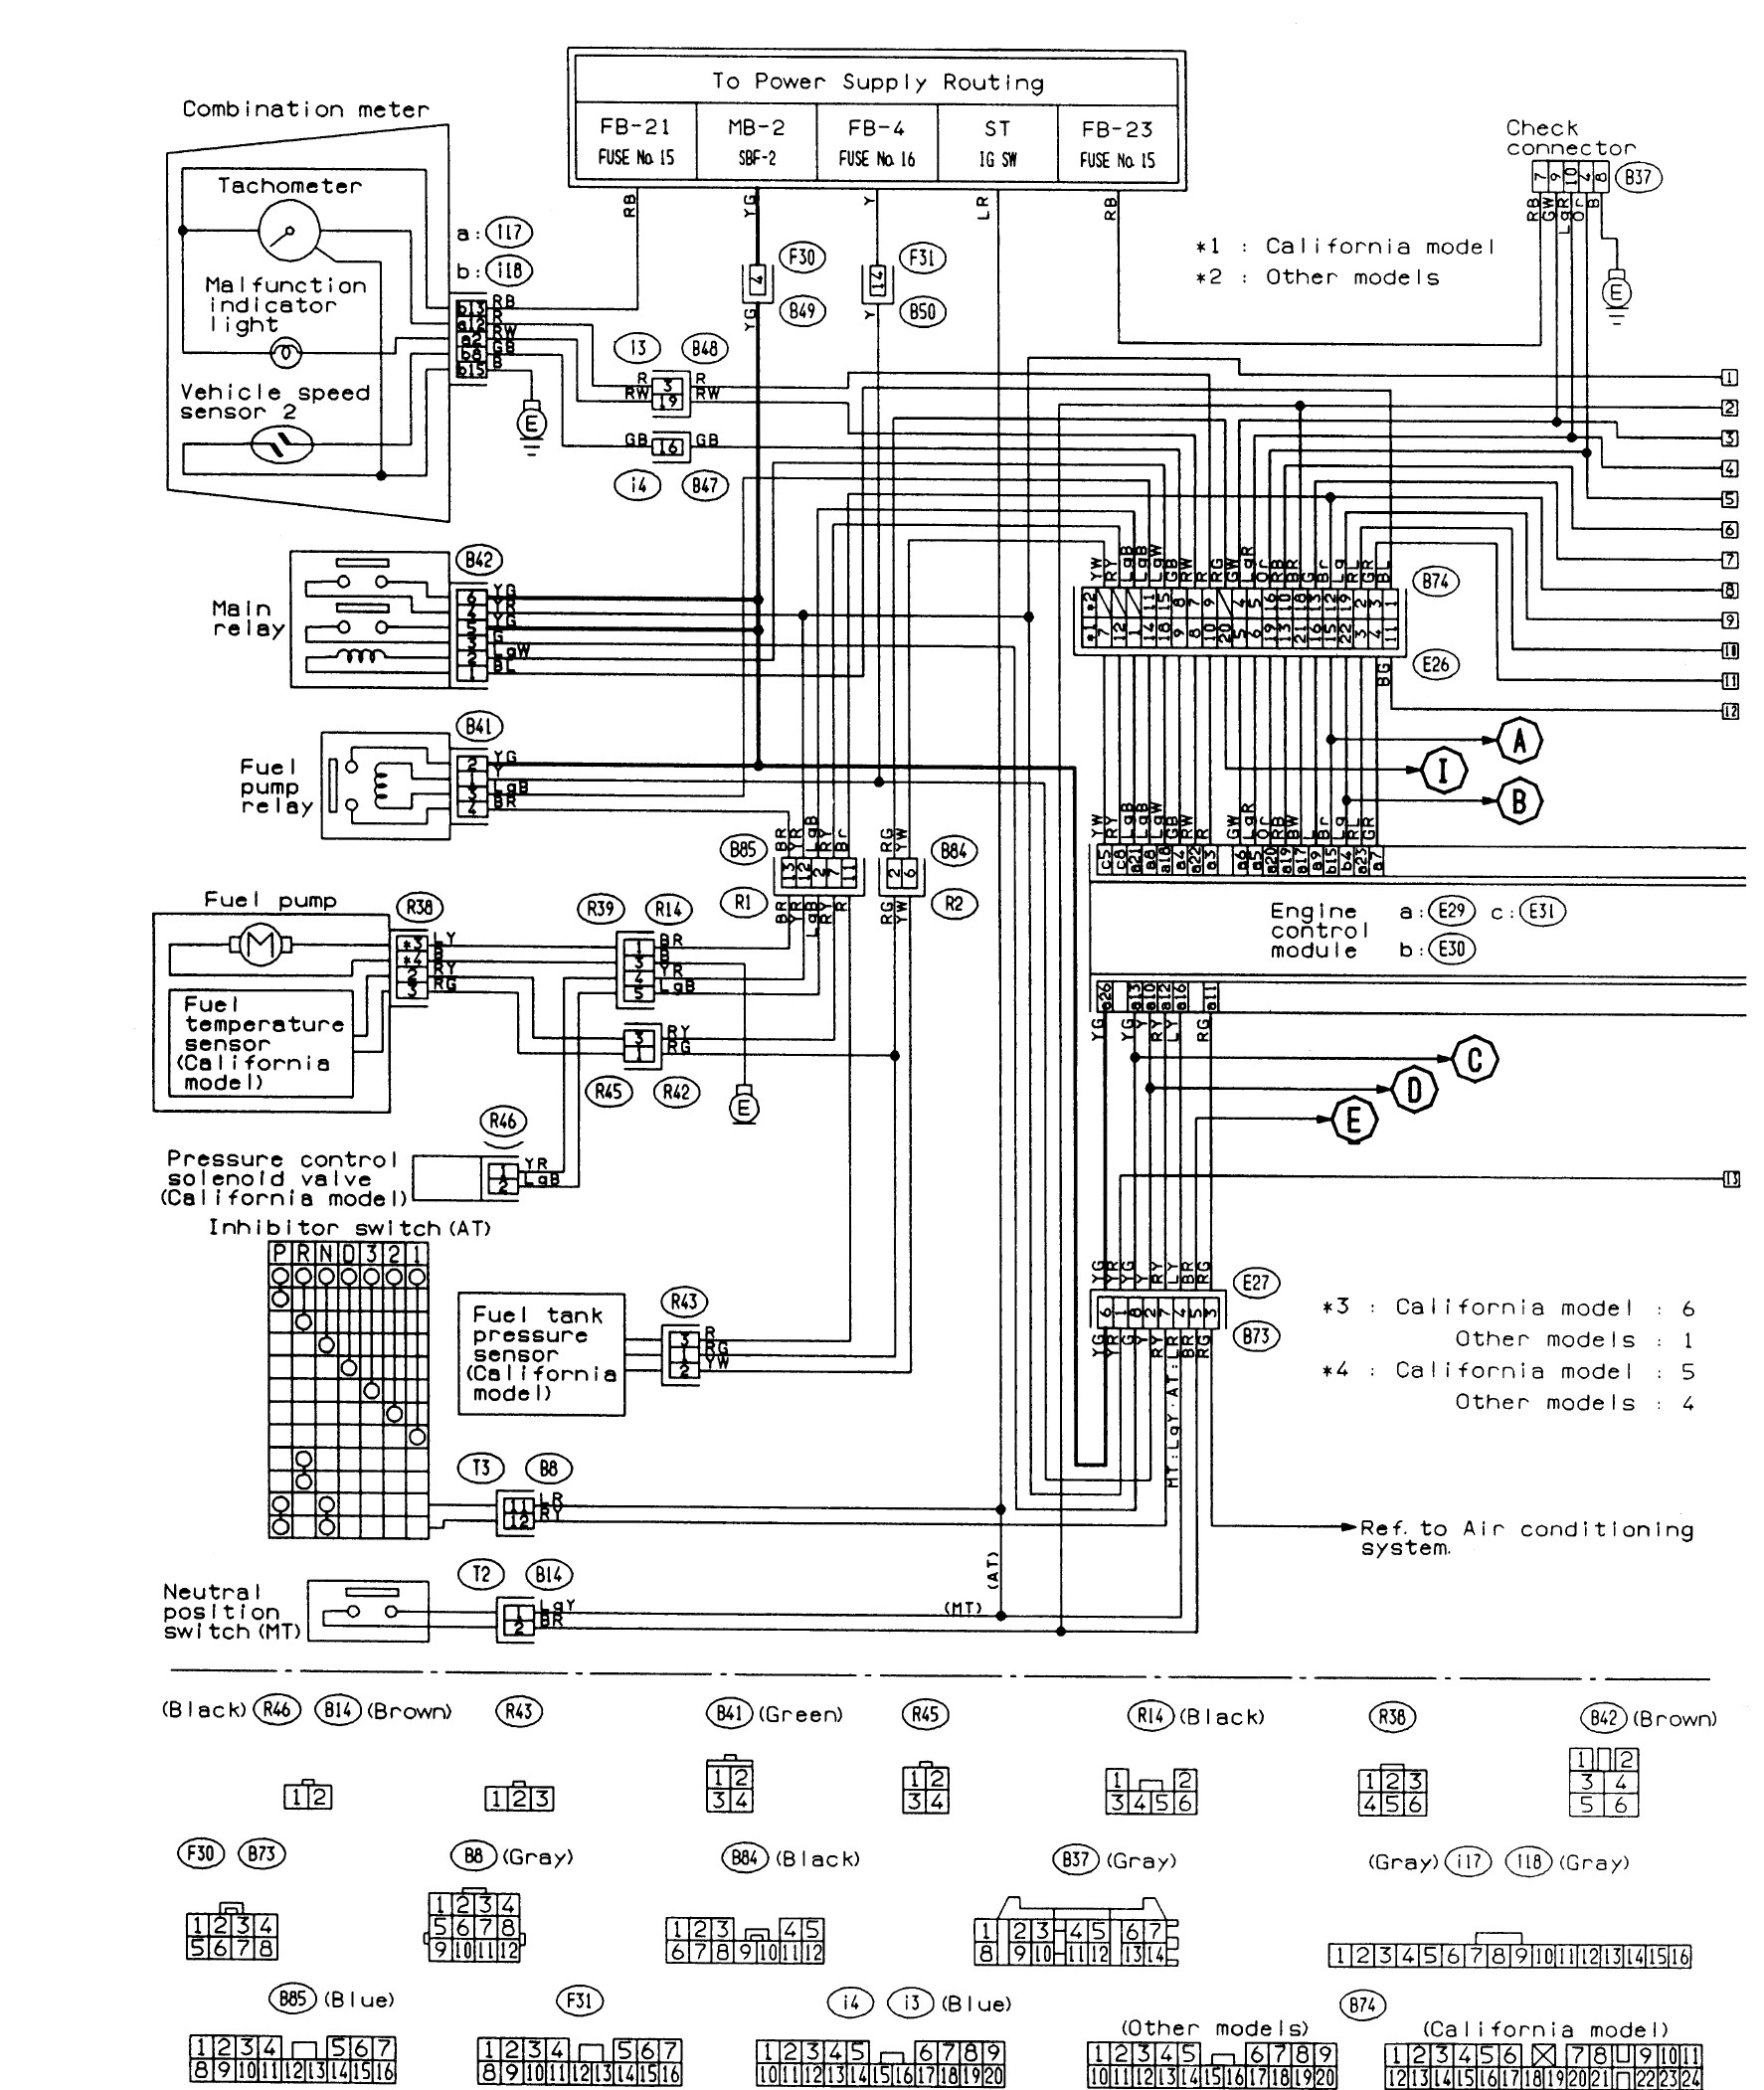 2004 Subaru forester Engine Diagram Wiring Diagram 2004 Subaru forester forester Wiring Of 2004 Subaru forester Engine Diagram